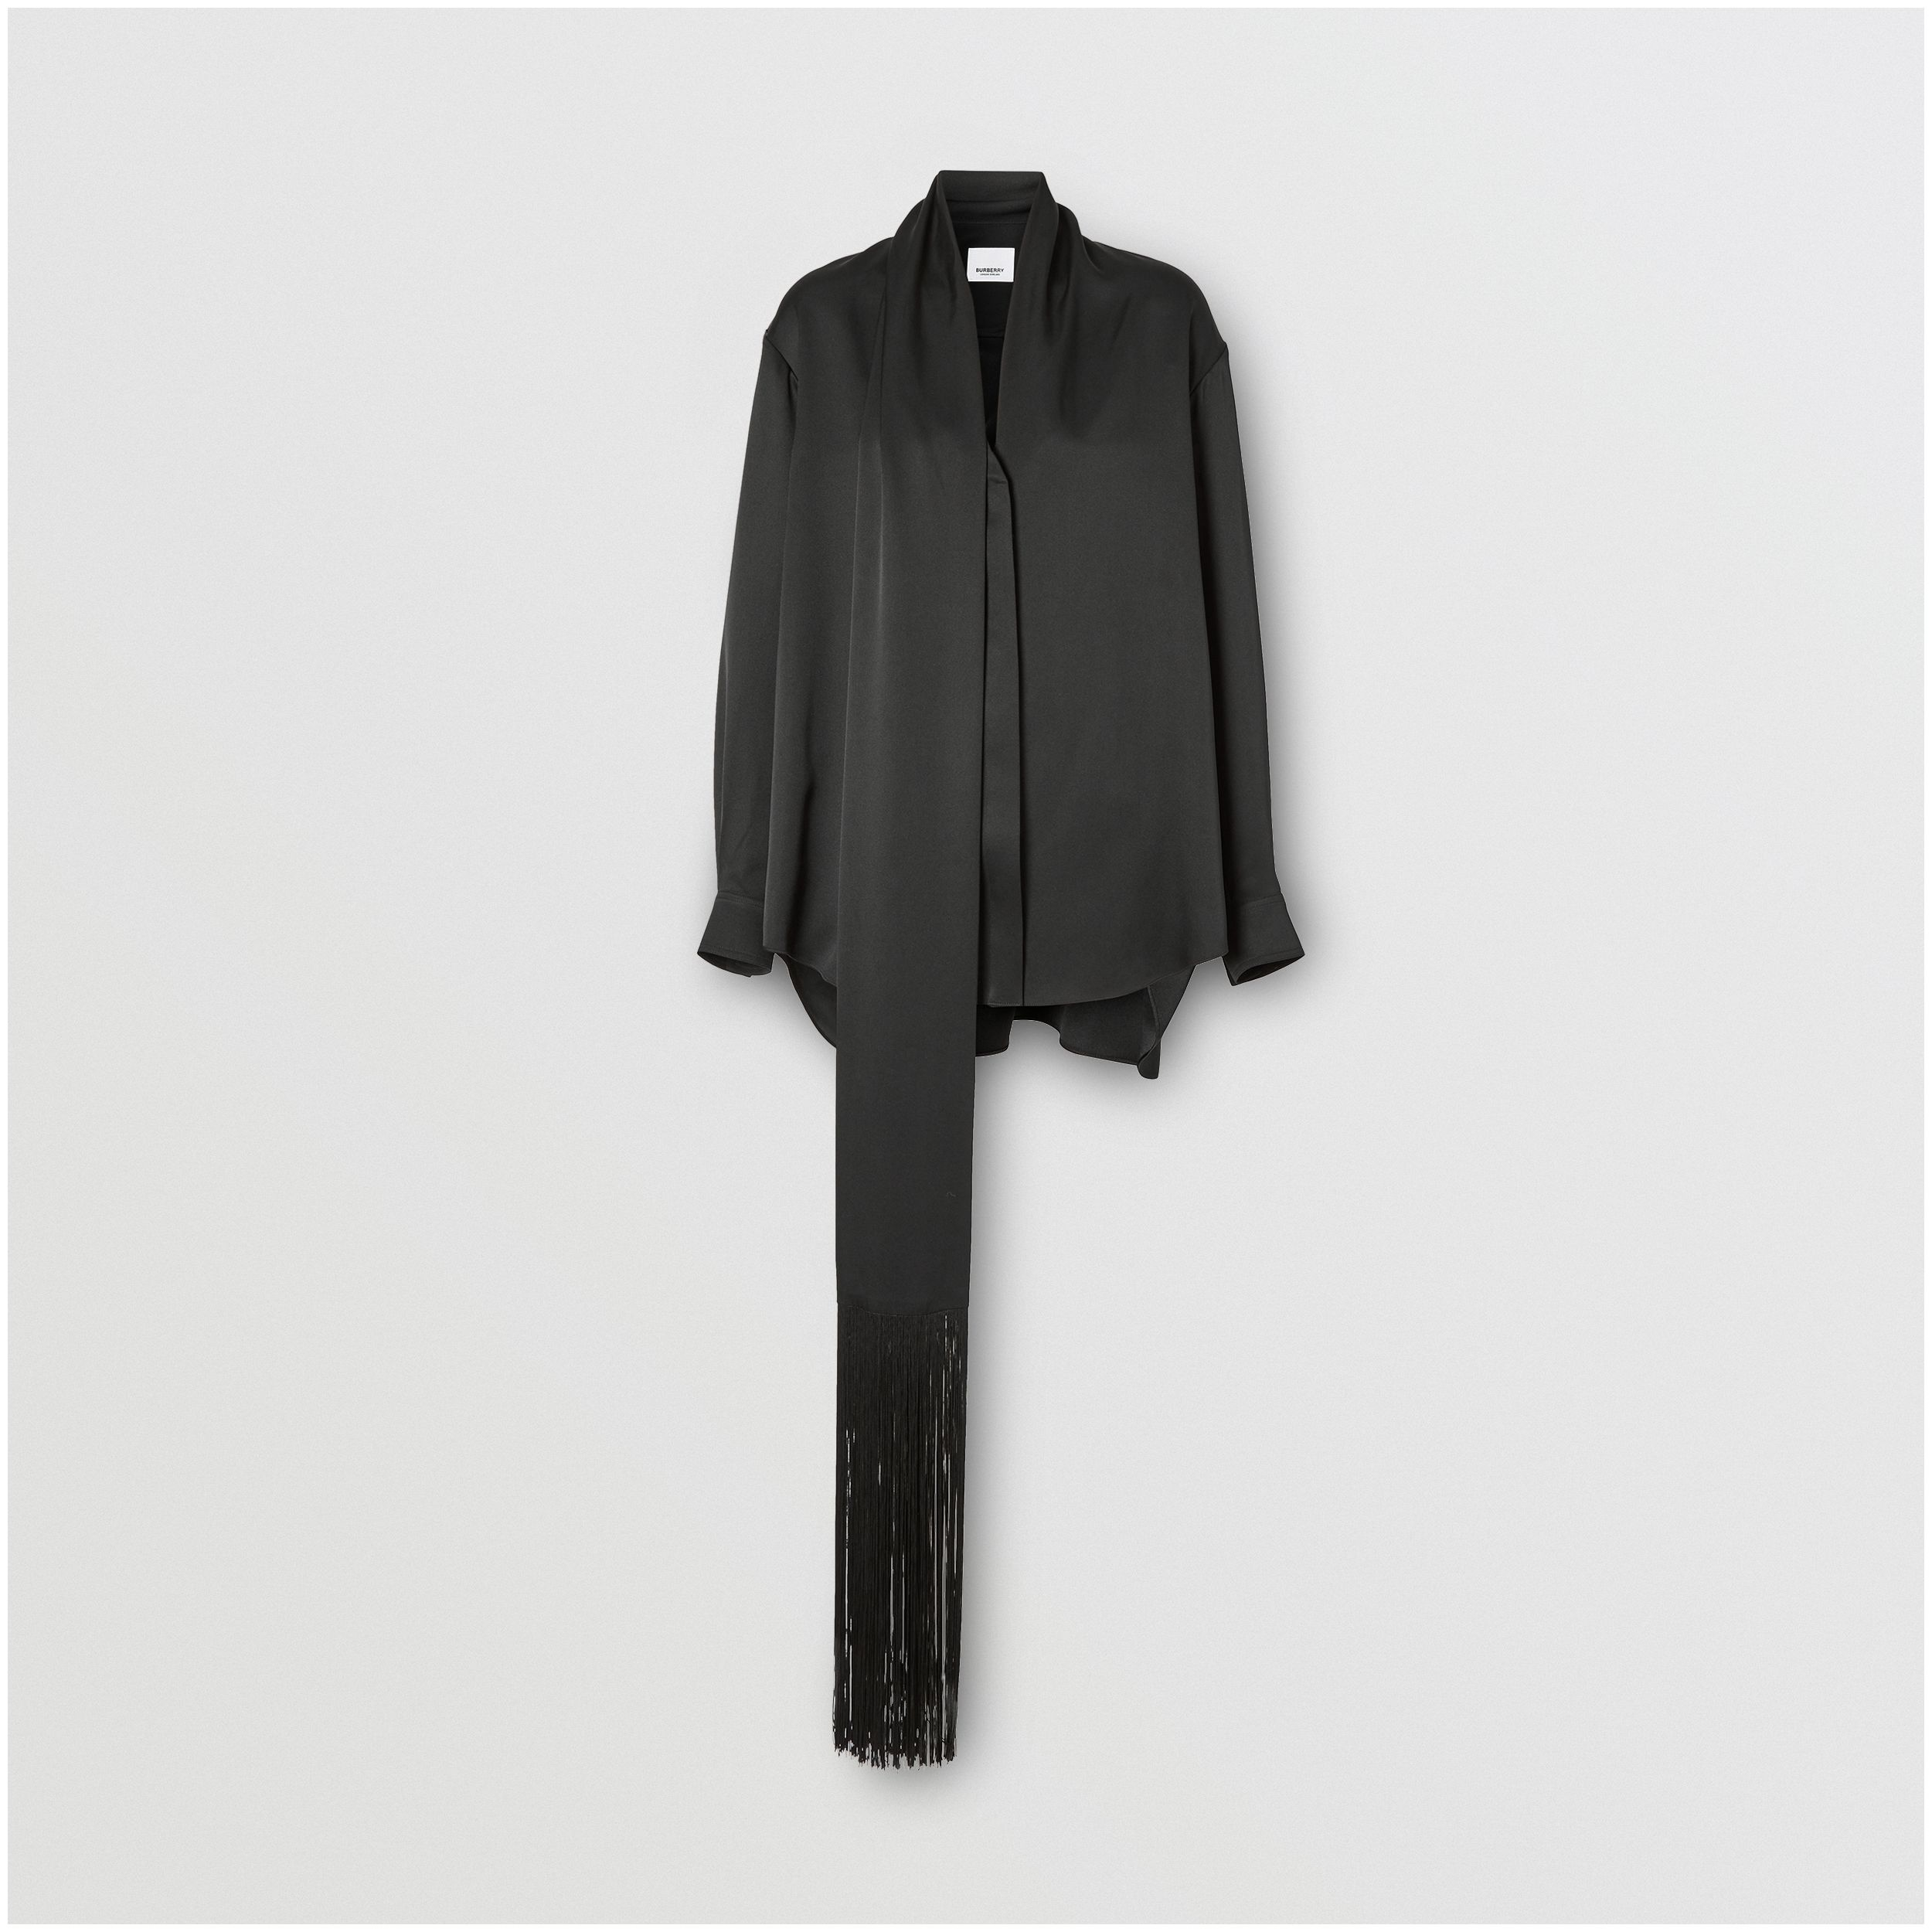 Fringed Scarf Detail Silk Satin Shirt in Black - Women | Burberry - 4